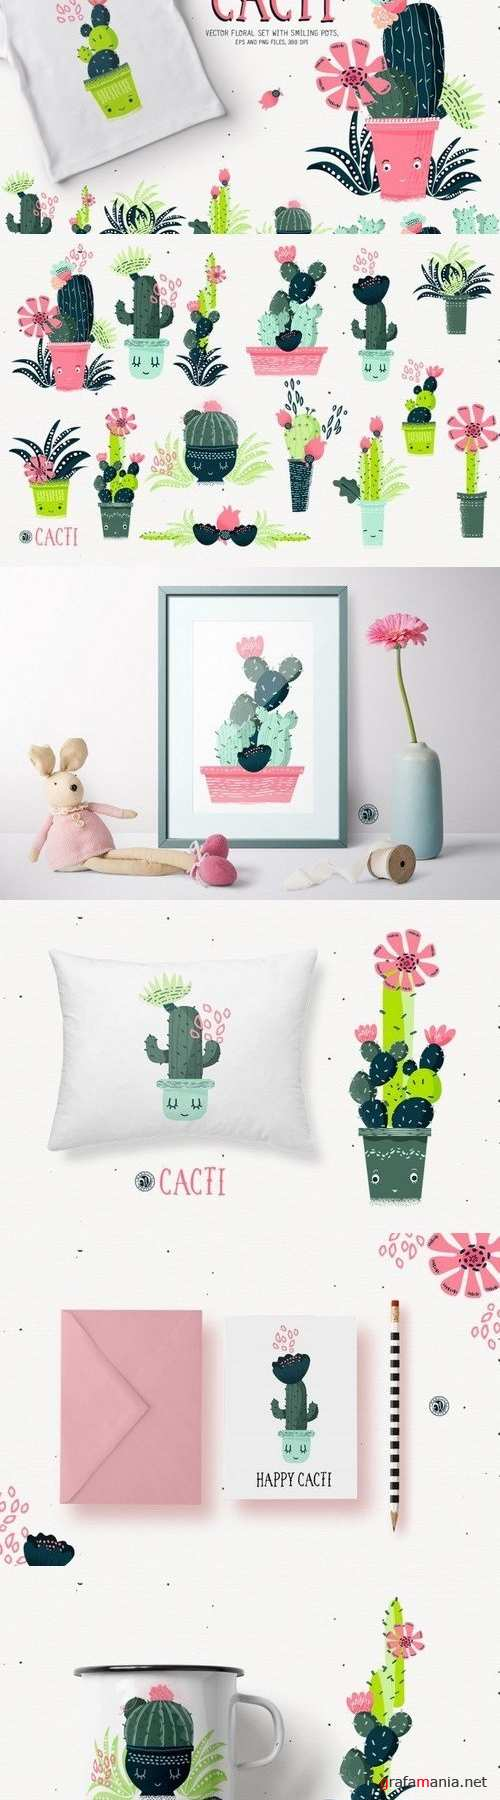 Cacti With Smiling Pots 1761126